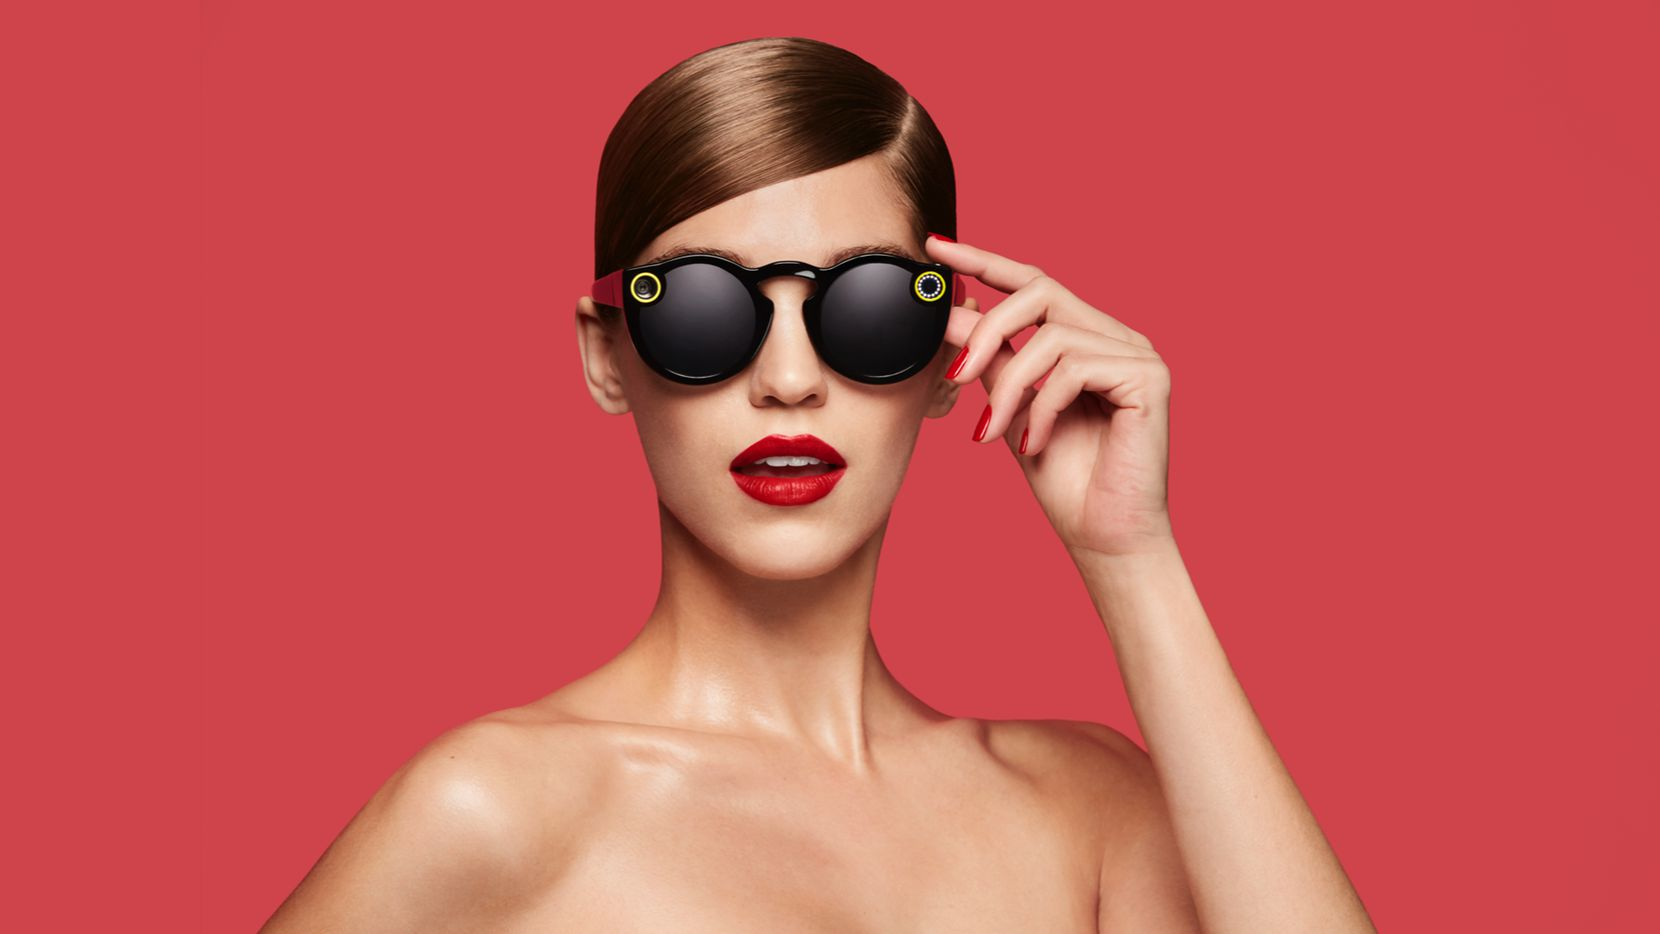 """This undated image courtesy of Snap Inc. shows the company's Spectacles video-catching sunglasses. Snapchat announced on September 24, 2016, it will launch a line of sunglasses, a spin on Glass eyewear abandoned by Google more than a year ago. The California-based company said in an online post that its Spectacles will be """"available soon,"""" with media reports pegging the price at $130 a pair."""